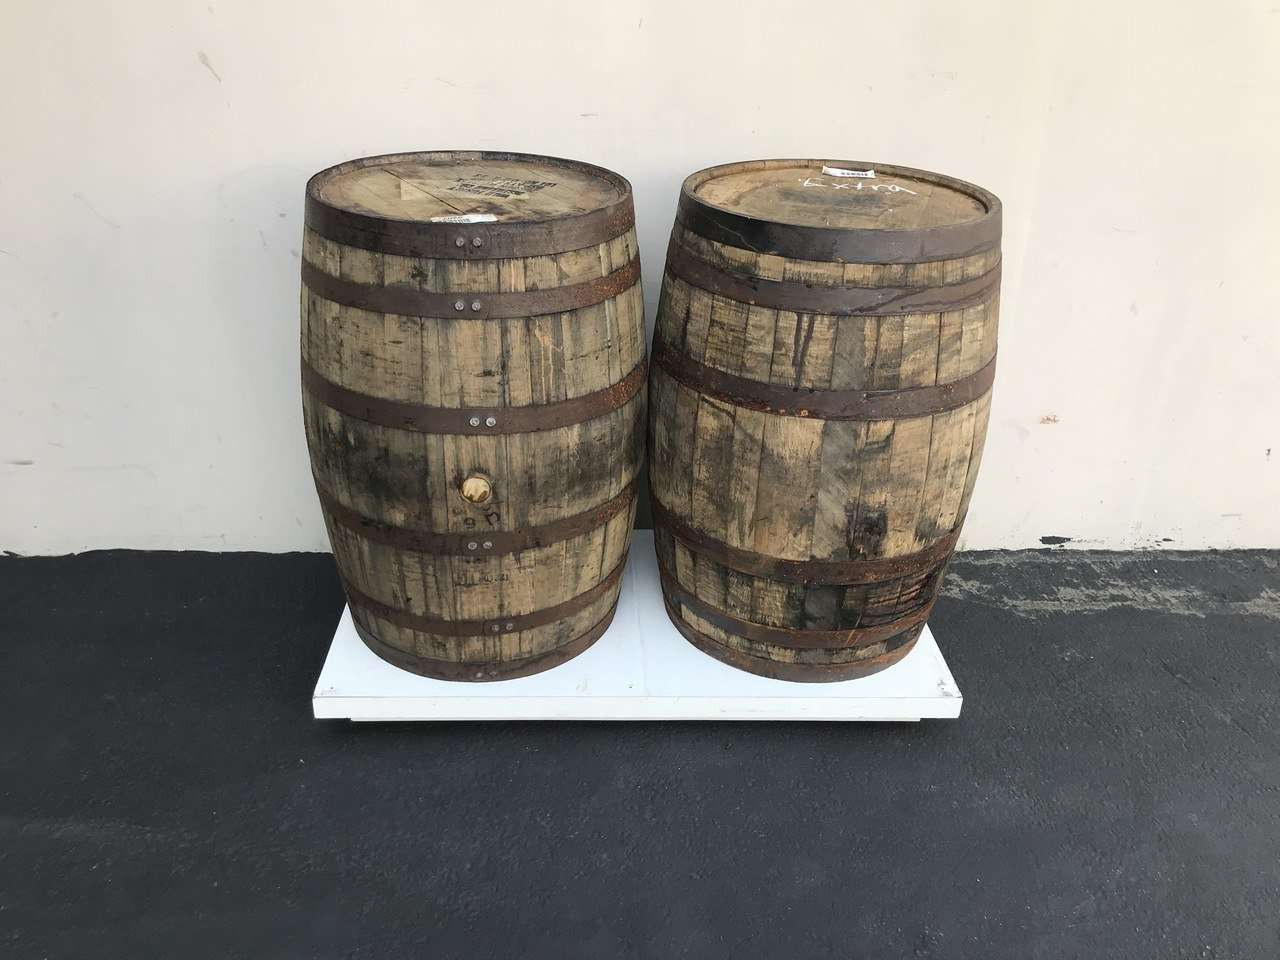 Barrels Whiskey Statue Life Size Wooden Prop Decor - Pre Owned - LM Treasures